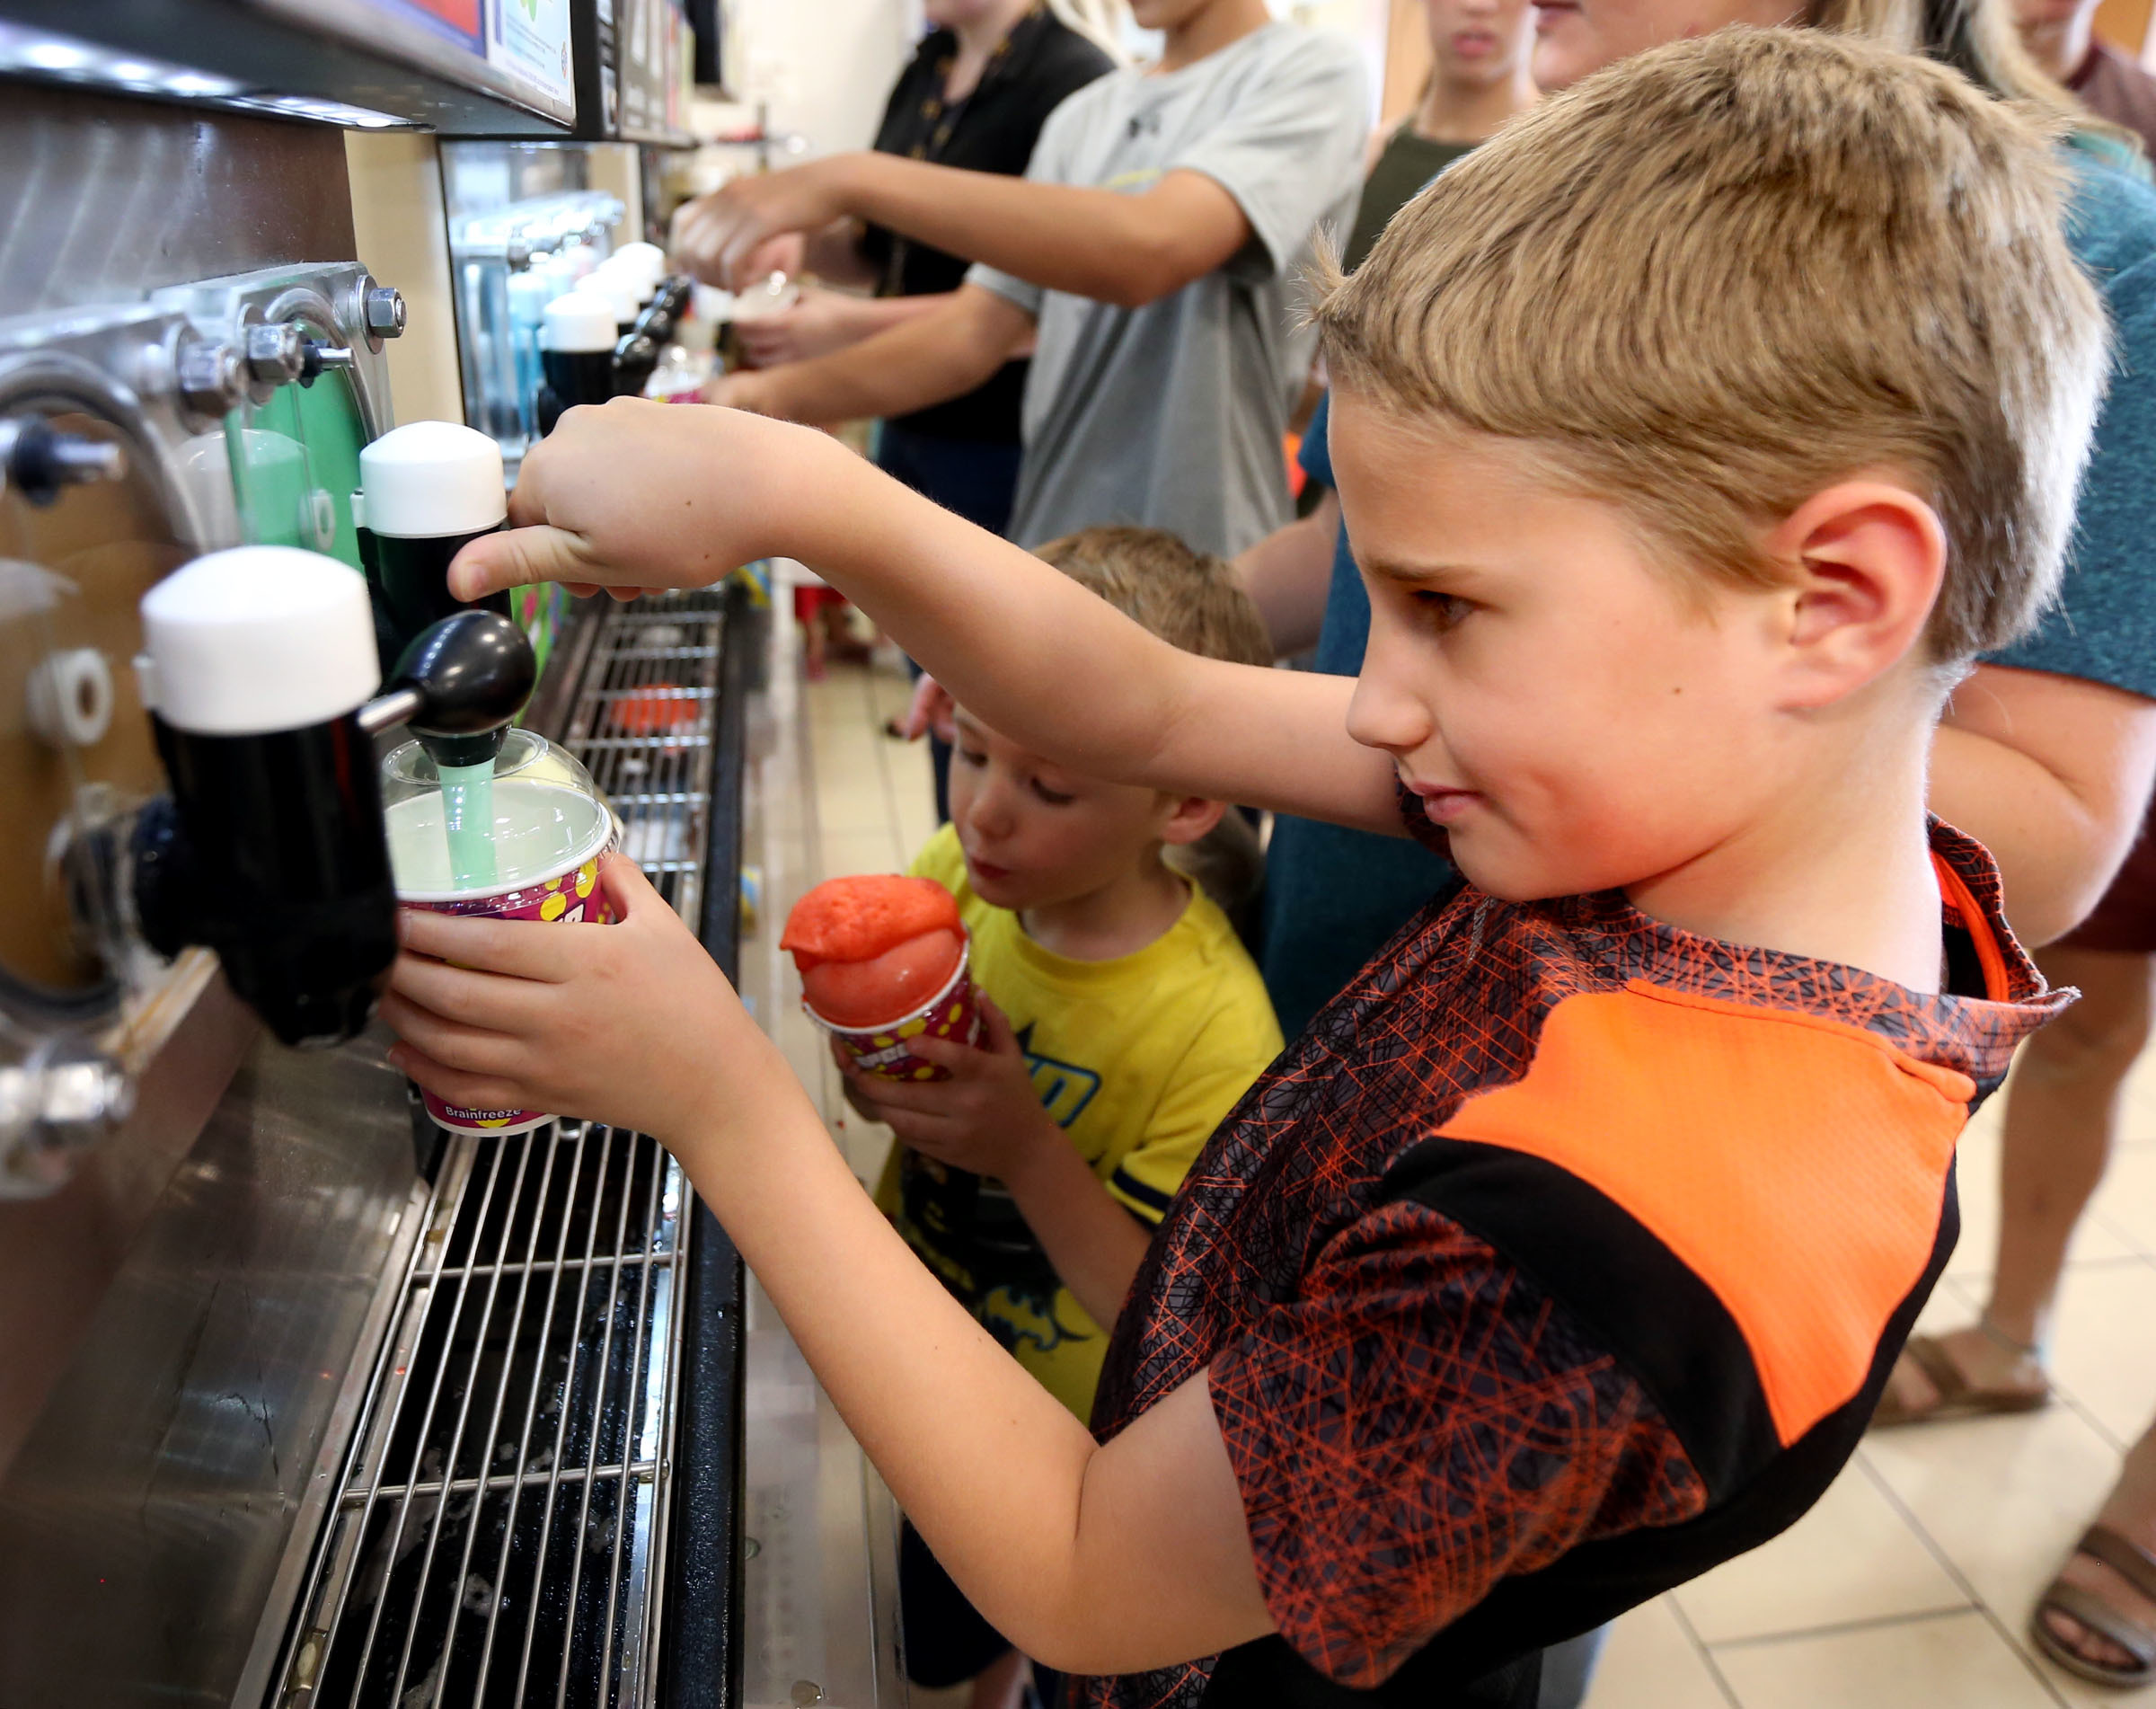 Levi Jordan gets his free Slurpee during 7-Eleven Day at 7-Eleven in Lehi on Tuesday, July 11, 2017. This particular 7-Eleven also hosted a blood drive with the Red Cross for 7-Eleven Day.